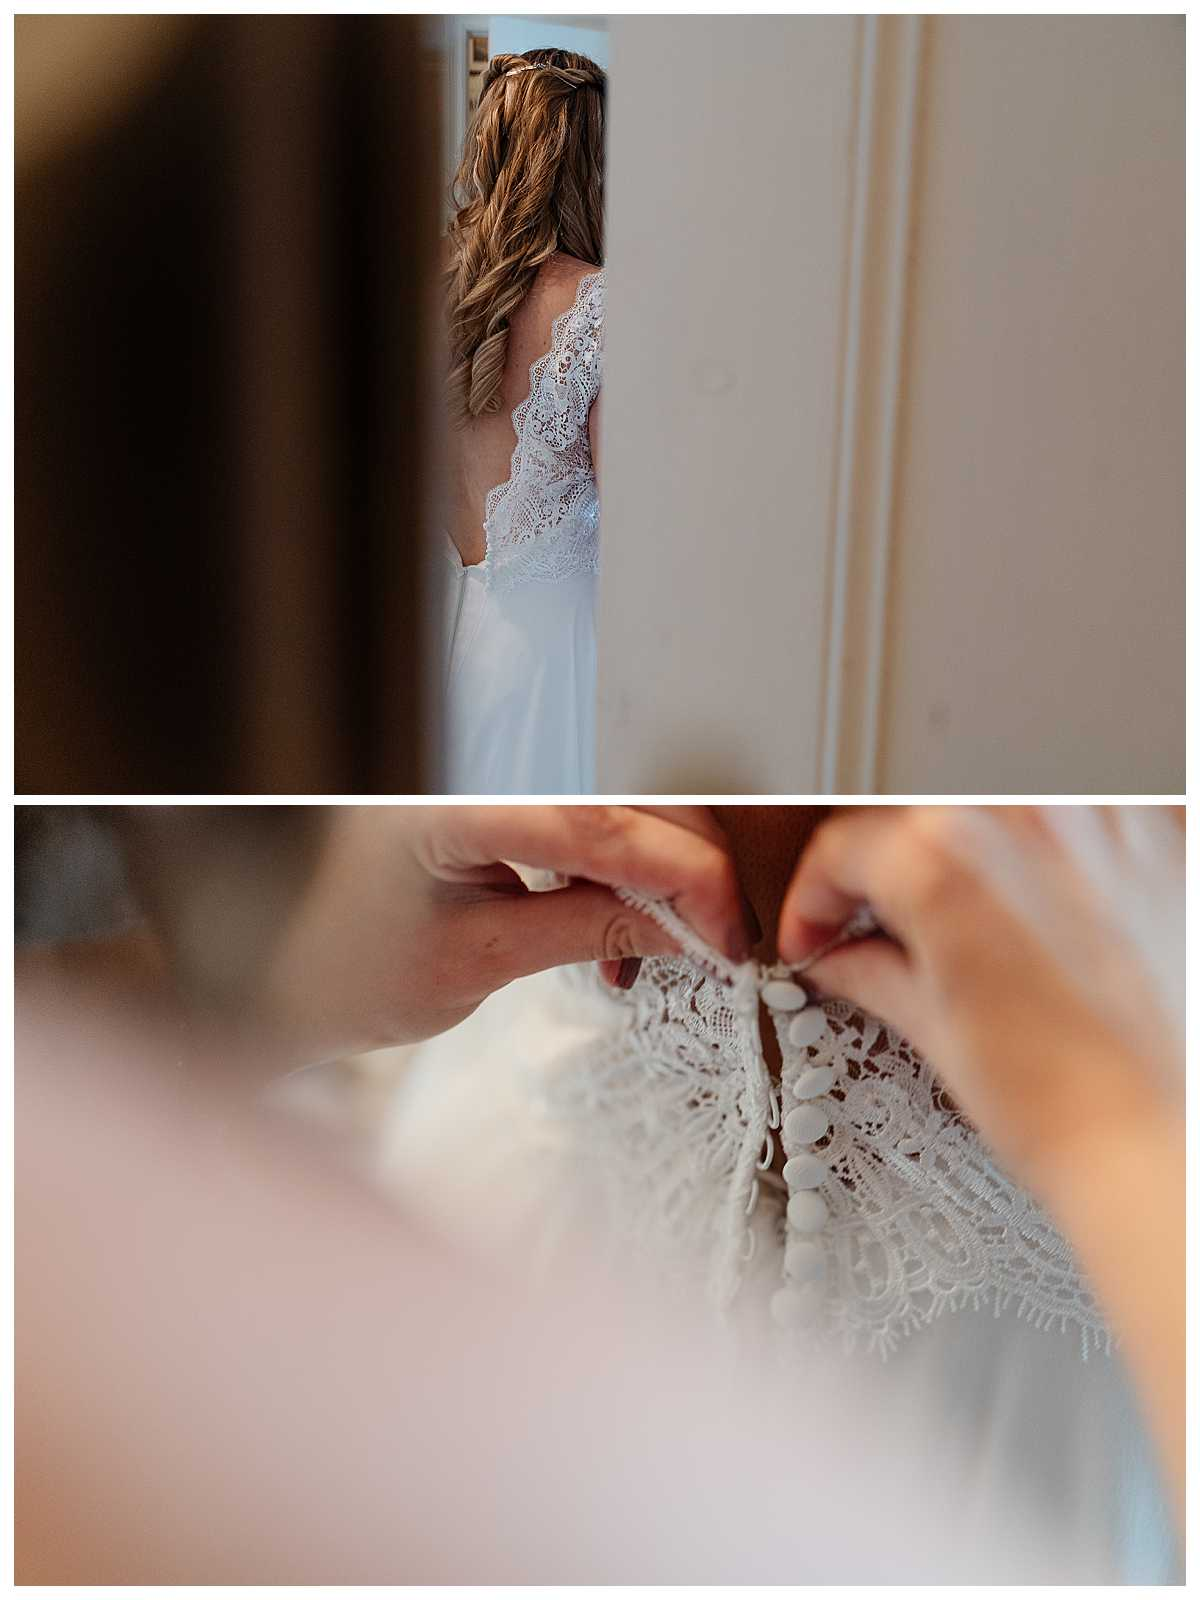 finishing touches, doing buttons up on wedding dress, charlotte giddings photography